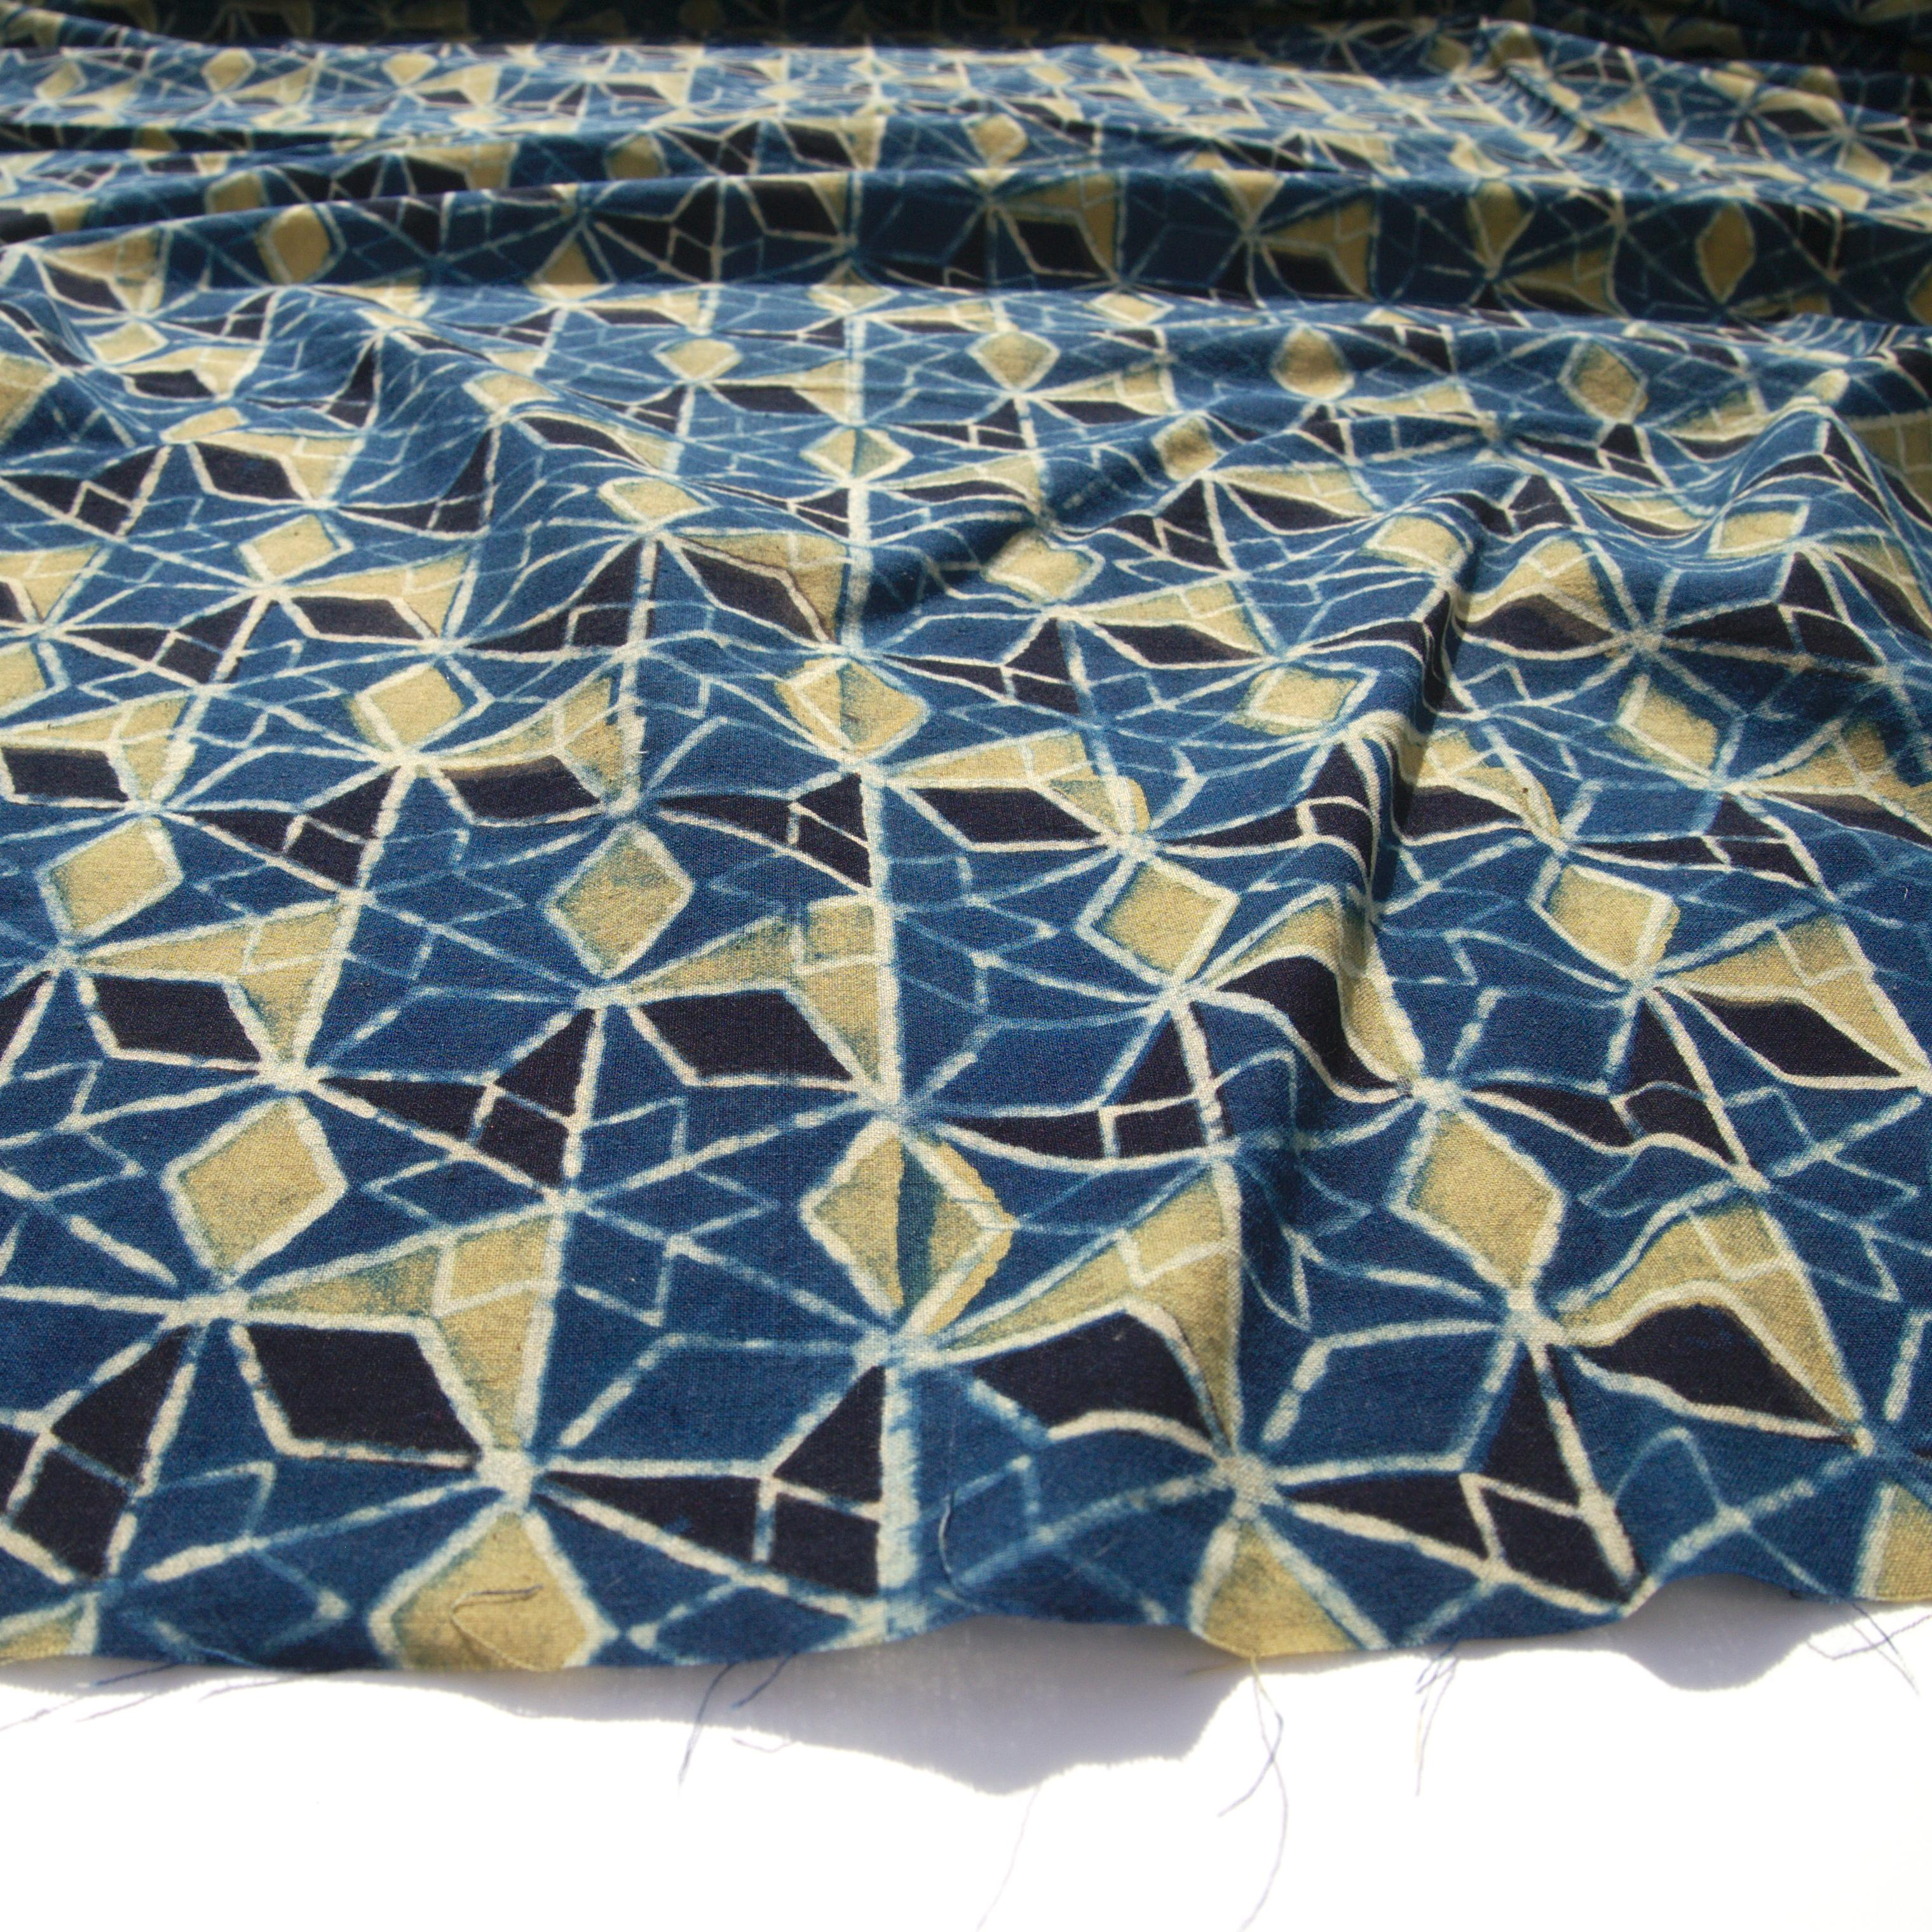 Block Printed Fabric, 100% Cotton, Ajrak Design: Blue Base, Black, Lime Wing. Angle